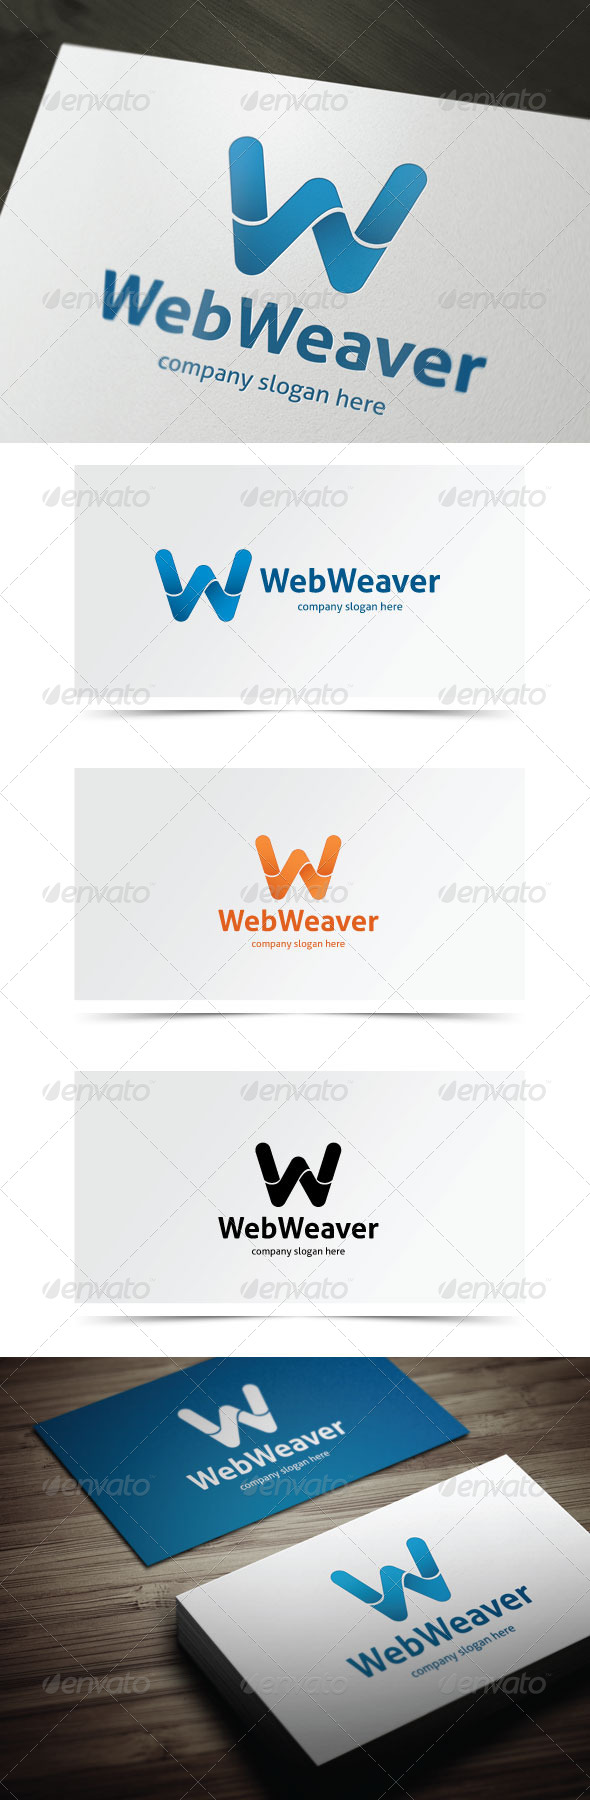 GraphicRiver Web Weaver 6288976